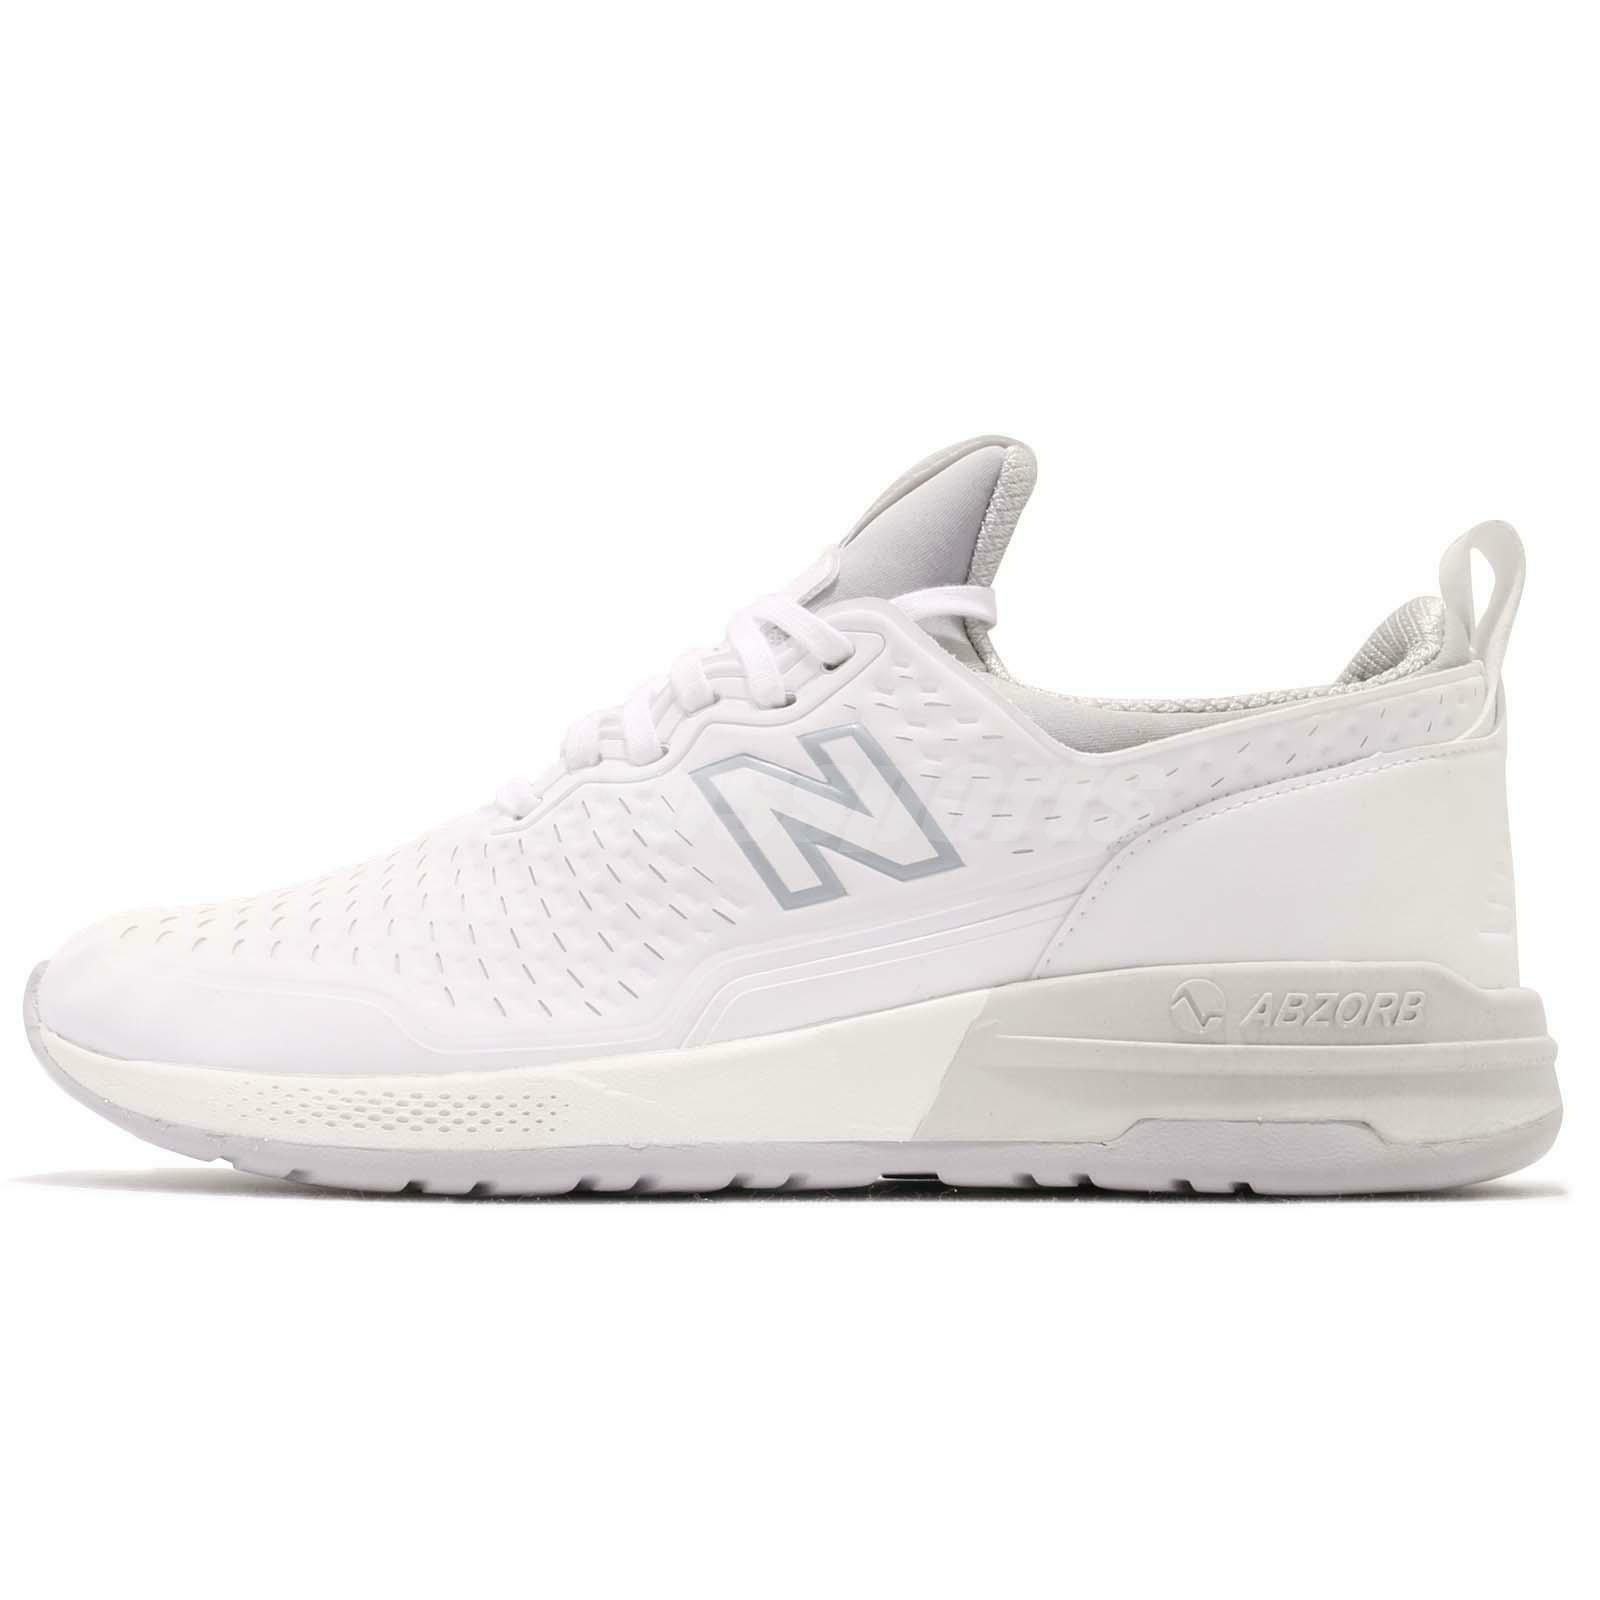 New Balance MS365NB D White Grey Men Running Casual shoes shoes shoes Sneakers MS365NBD 53b5ce